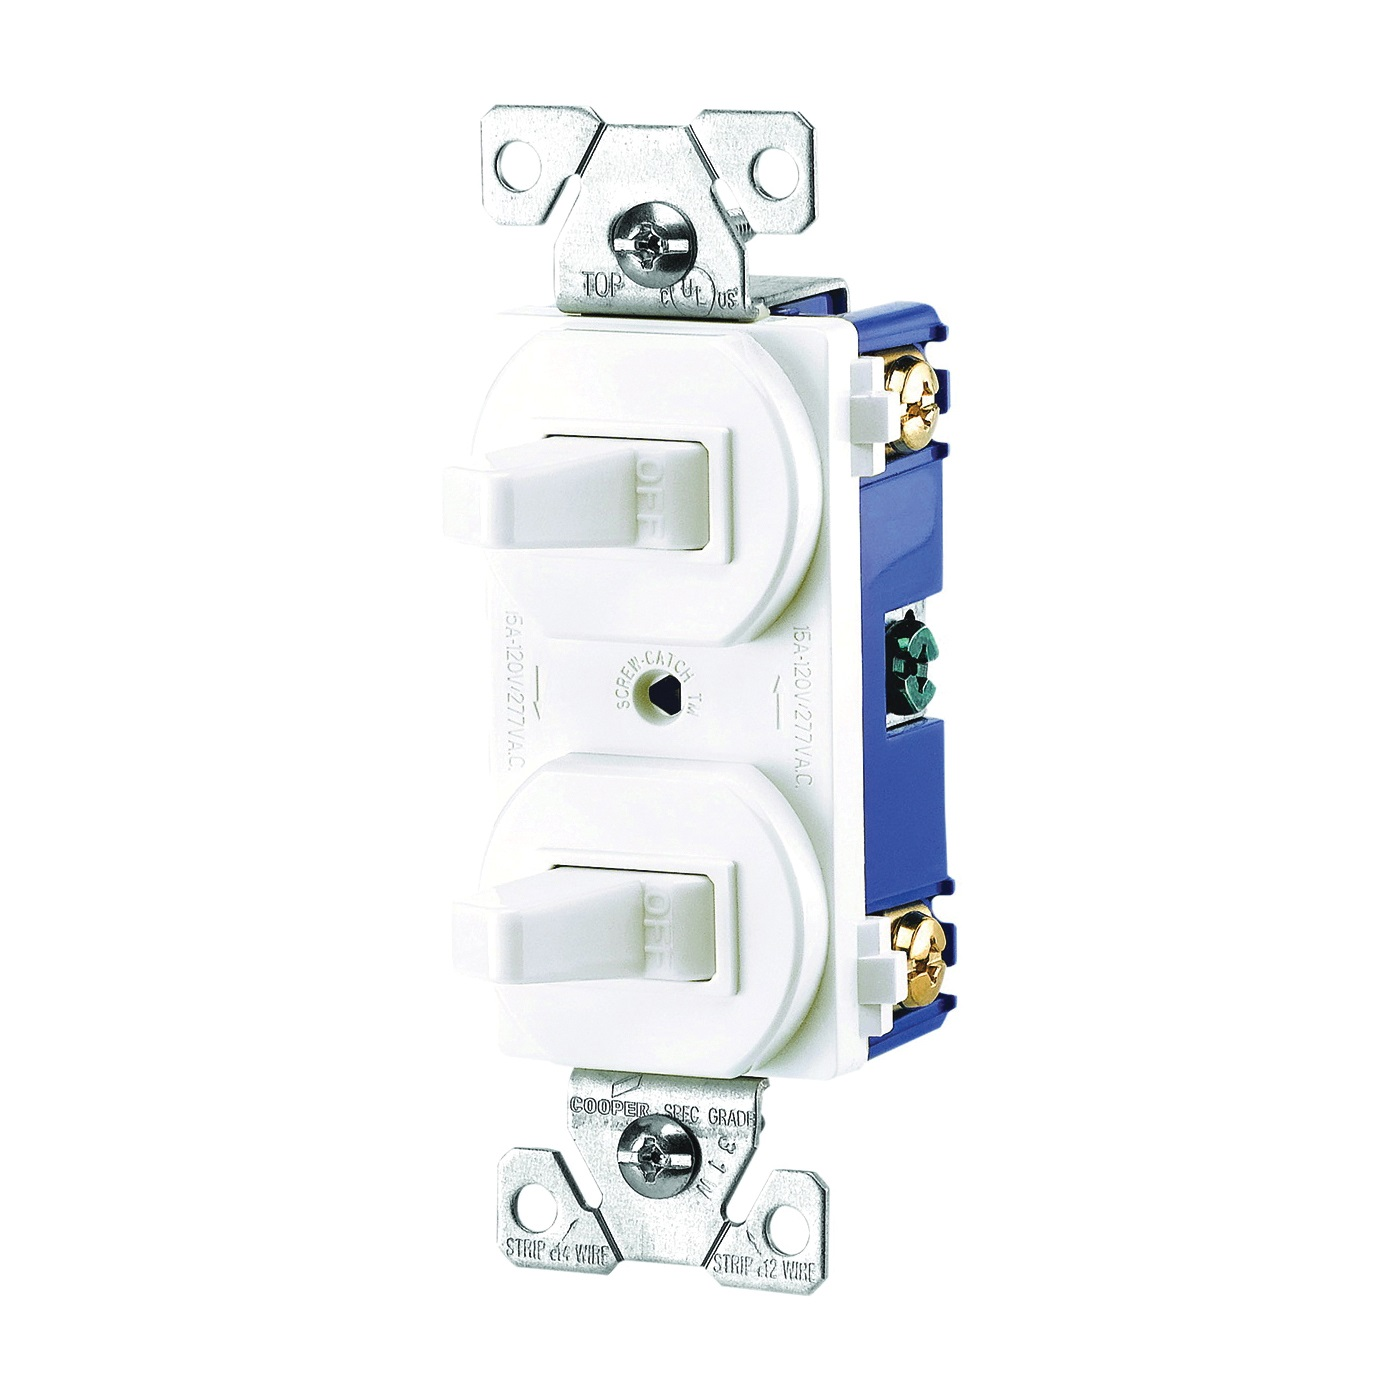 Picture of Eaton Wiring Devices 271W-BOX Combination Toggle Switch, 15 A, 120/277 V, Screw Terminal, Nylon Housing Material